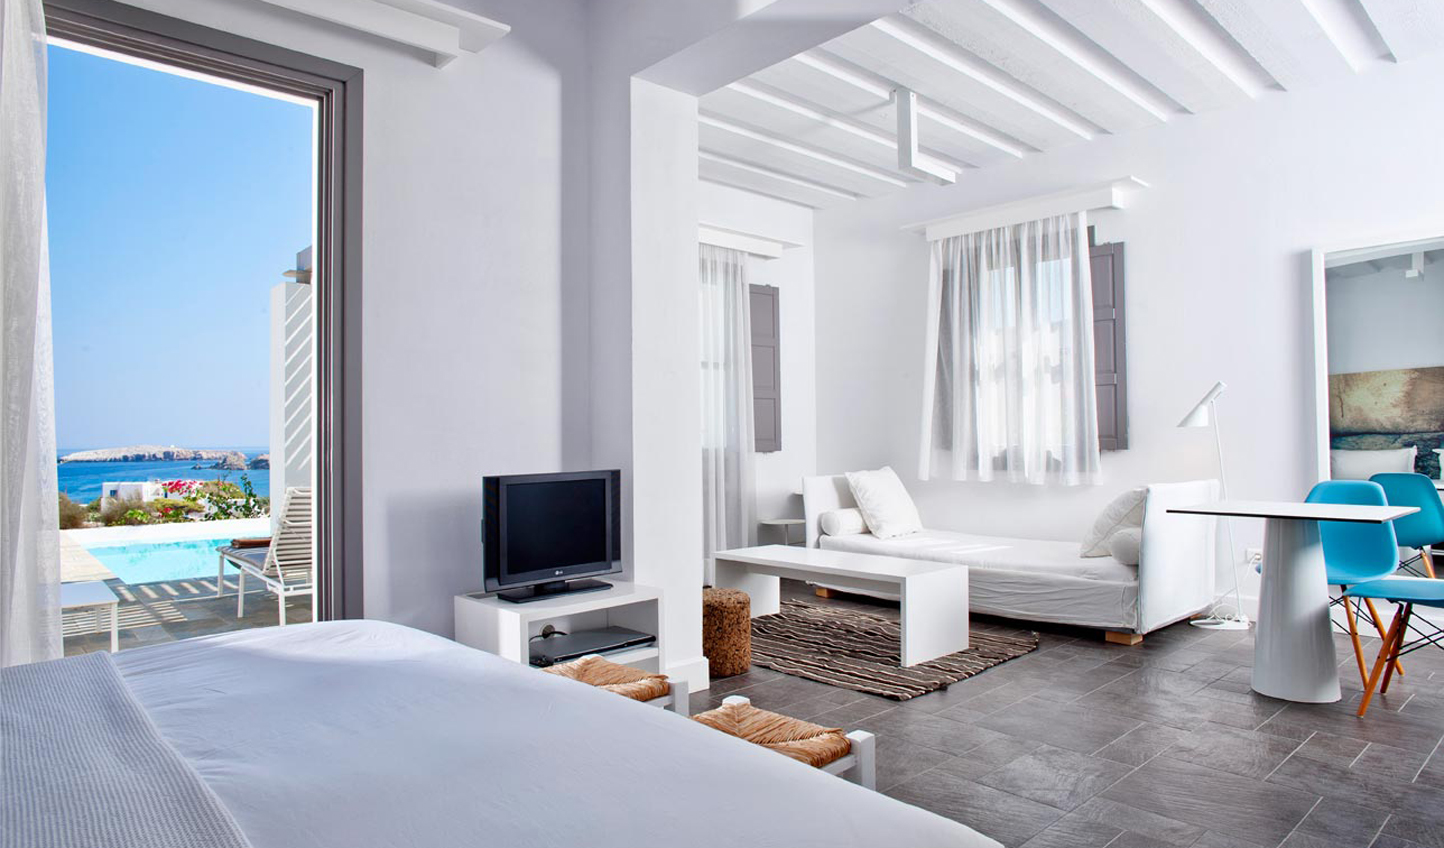 White washed walls in your suite